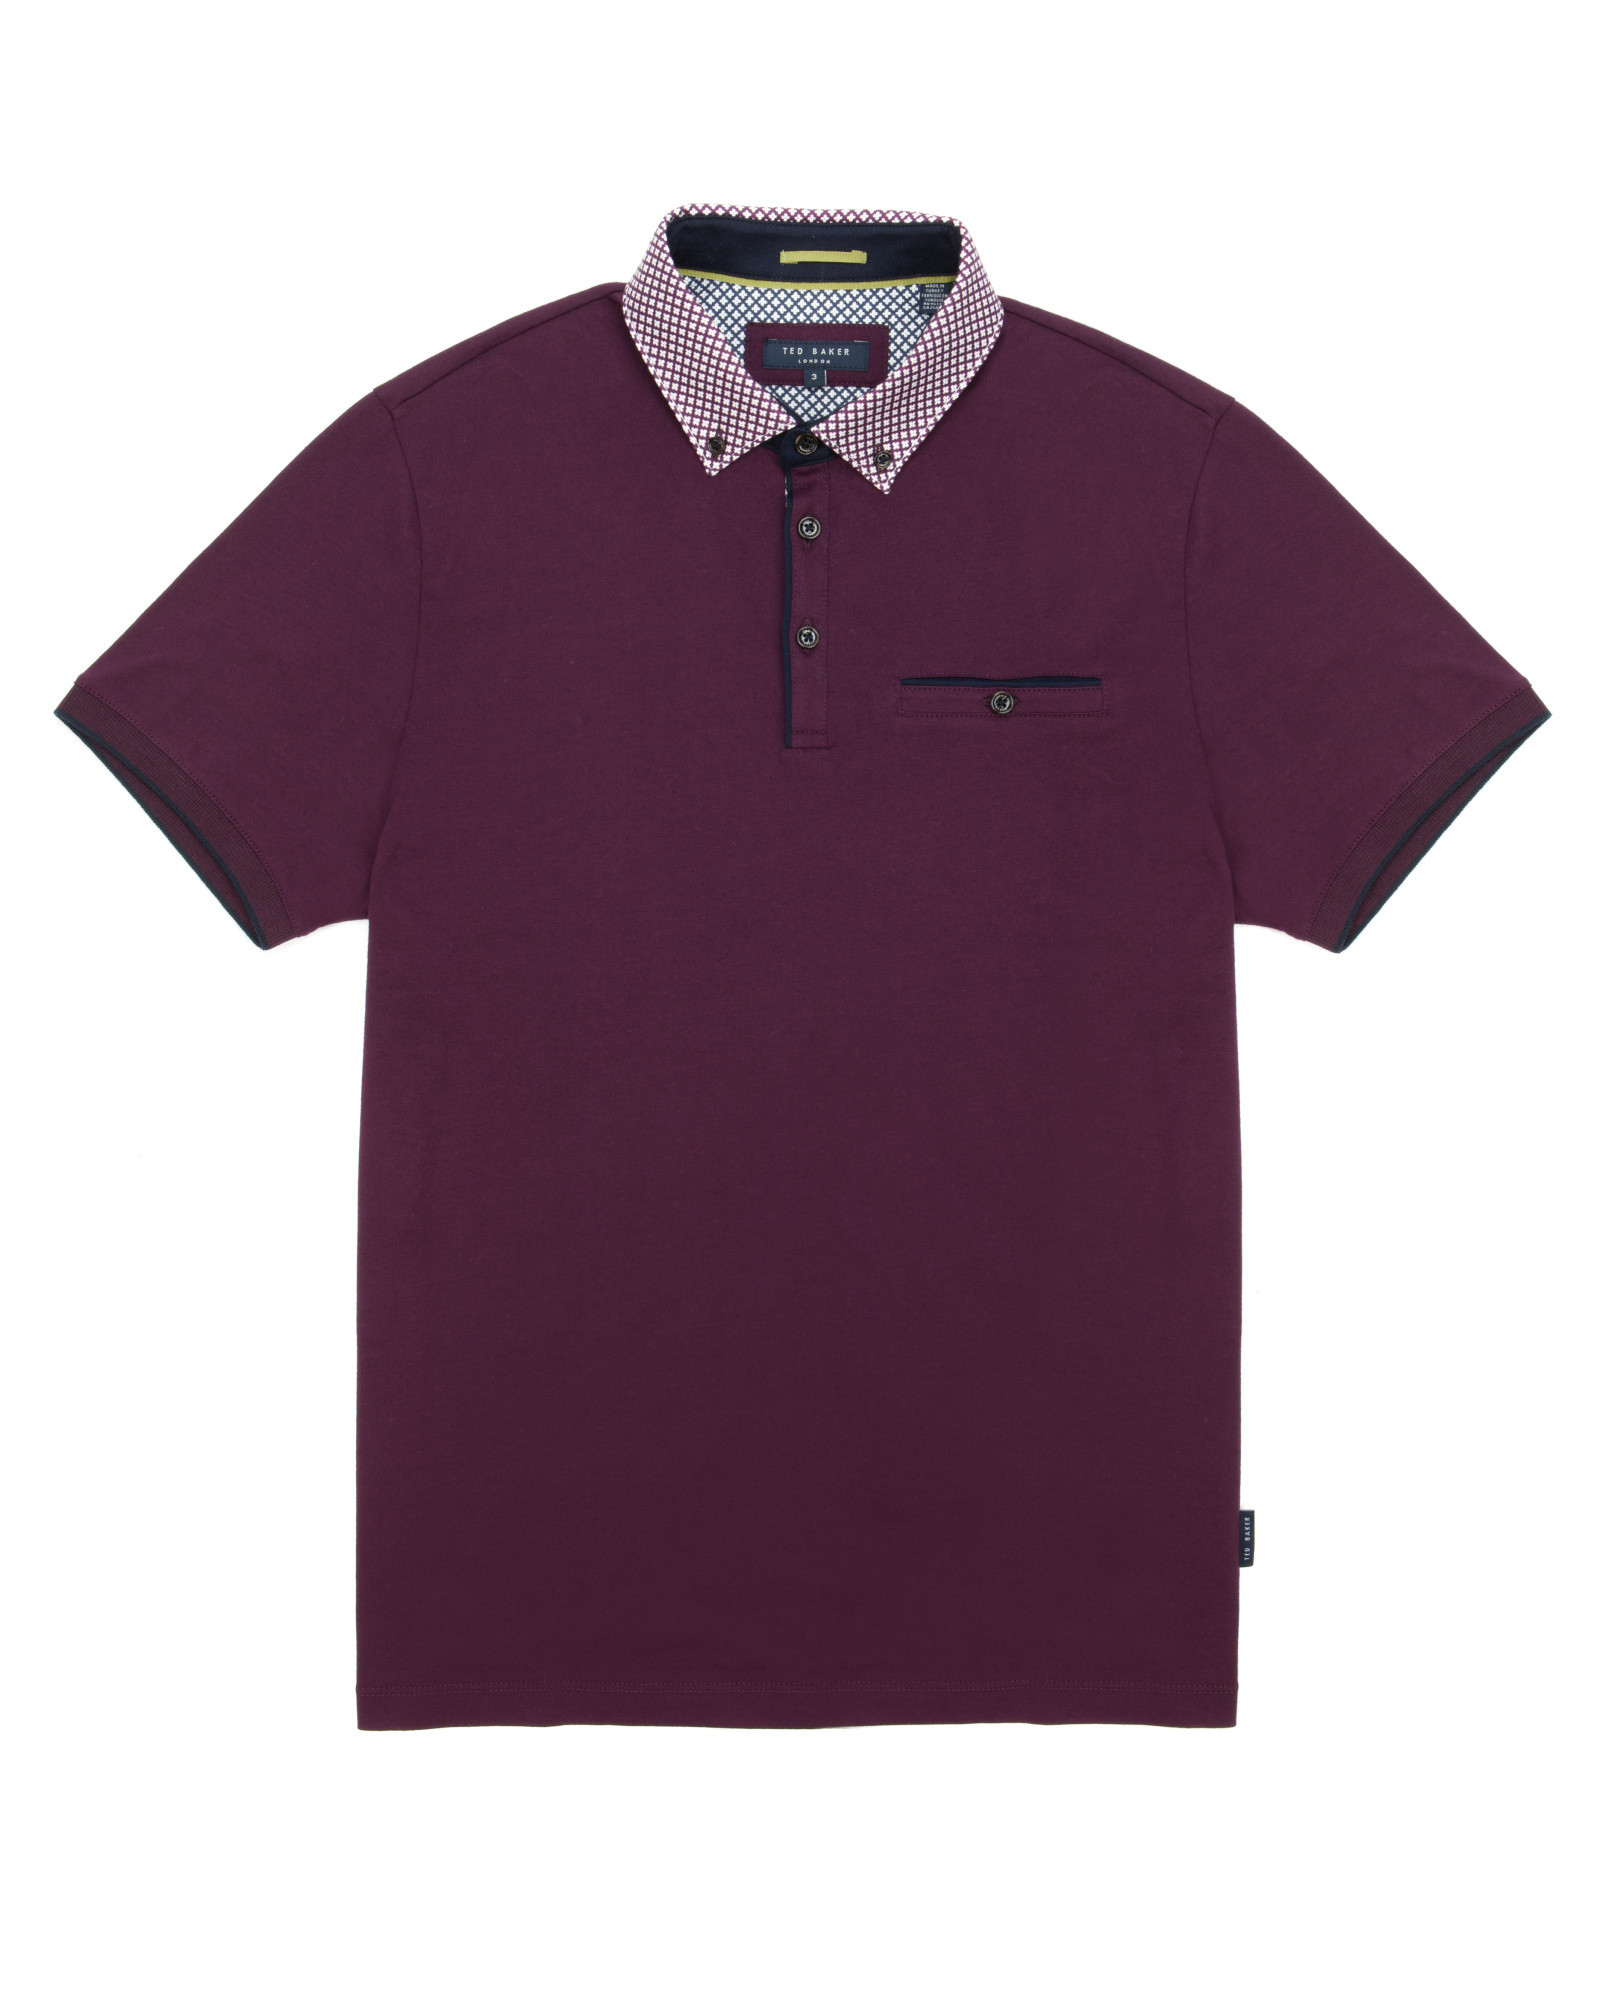 61b1dc8a02 Lyst - Ted Baker Mayford Polo Shirt in Purple for Men